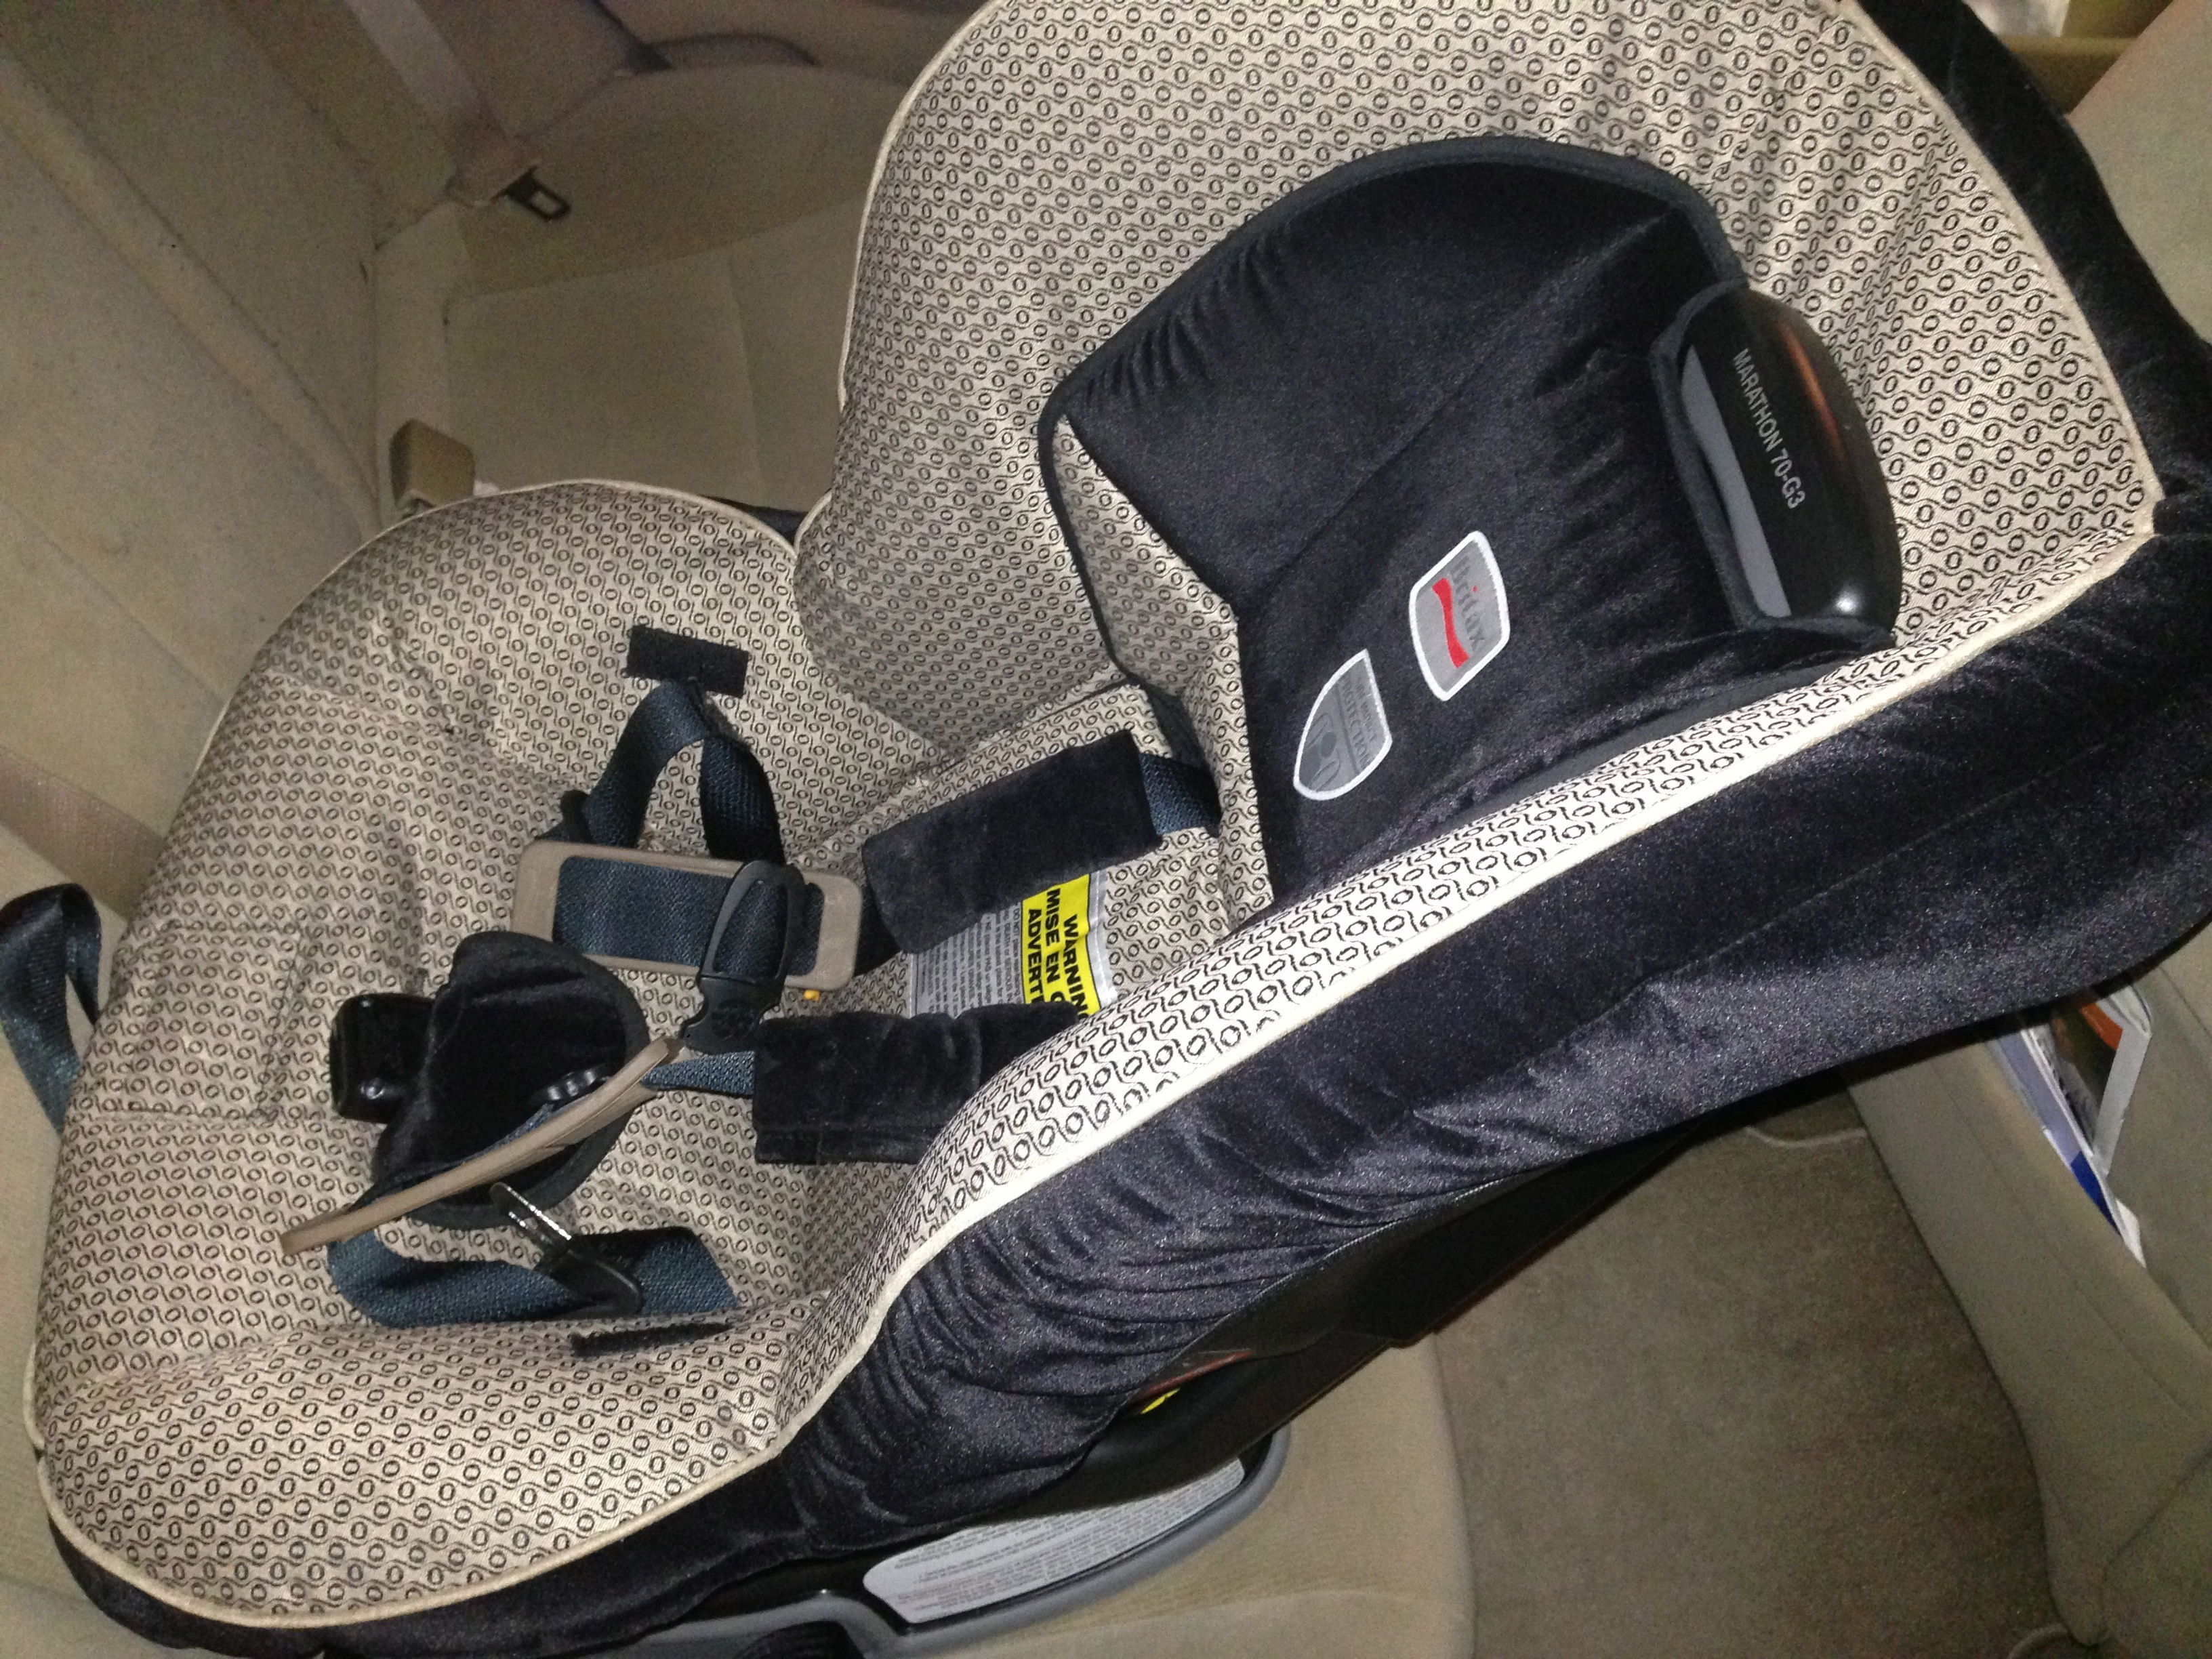 Delta Baggage Policy Car Seat